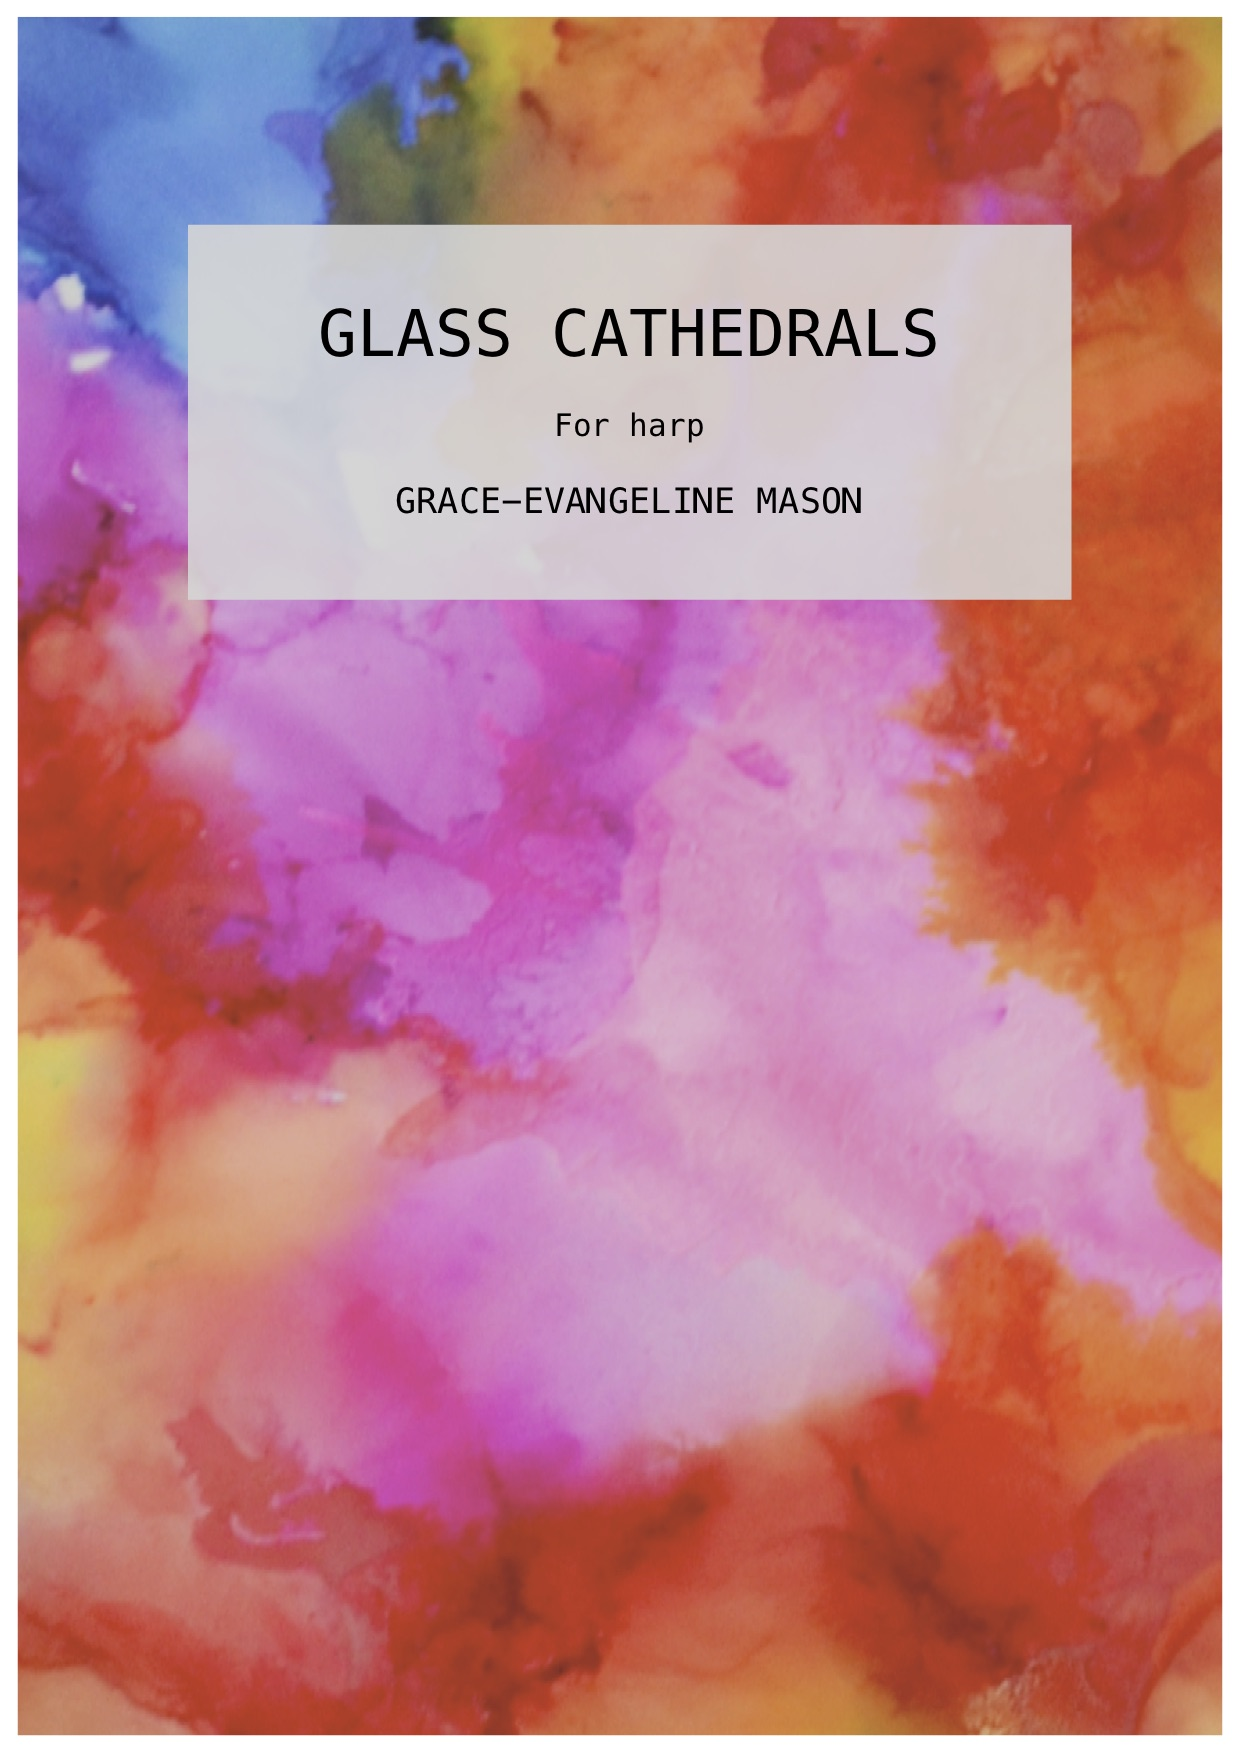 'GLASS CATHEDRALS' (2019) - for HarpApprox. Duration: 4'Written for Lauren Scott as part of Psappha Ensemble's 'Composing For' Scheme 2019'Glass Cathedrals' (2019) for solo harp is inspired by the conceptual image of a grand cathedral constructed entirely of glass. The work seeks to create a delicate sound-world to emulate the fragility of the glass structure, contrasted by the use of prevailing, stronger indicatory material to emulate the large, imposing building itself. The piece aims to capture a moment of fleeting, temporary splendour before its great, and expectedly enduring, structure shatters. The melodic content is also inspired by lines from the poem 'Adonaïs' by Shelley:'Life, like a dome of many-coloured glass, Stains the white radiance of eternity' ©G.E.M.2018©Cover Image: 'Glass Cathedrals' Painting by Grace-Evangeline Mason 2019